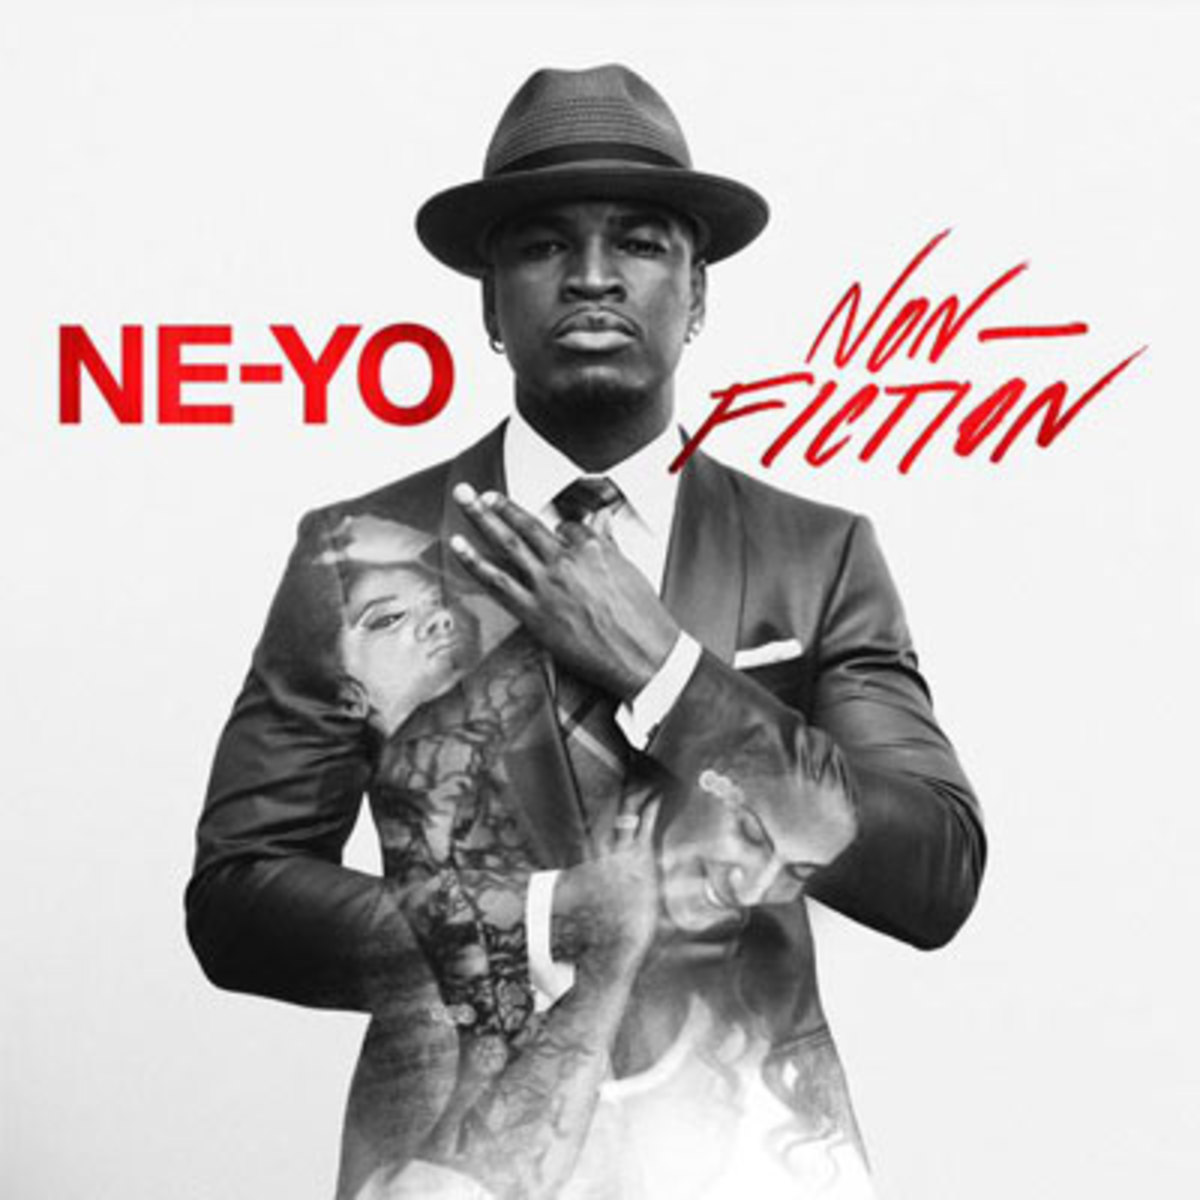 neyo-nonfiction.jpg